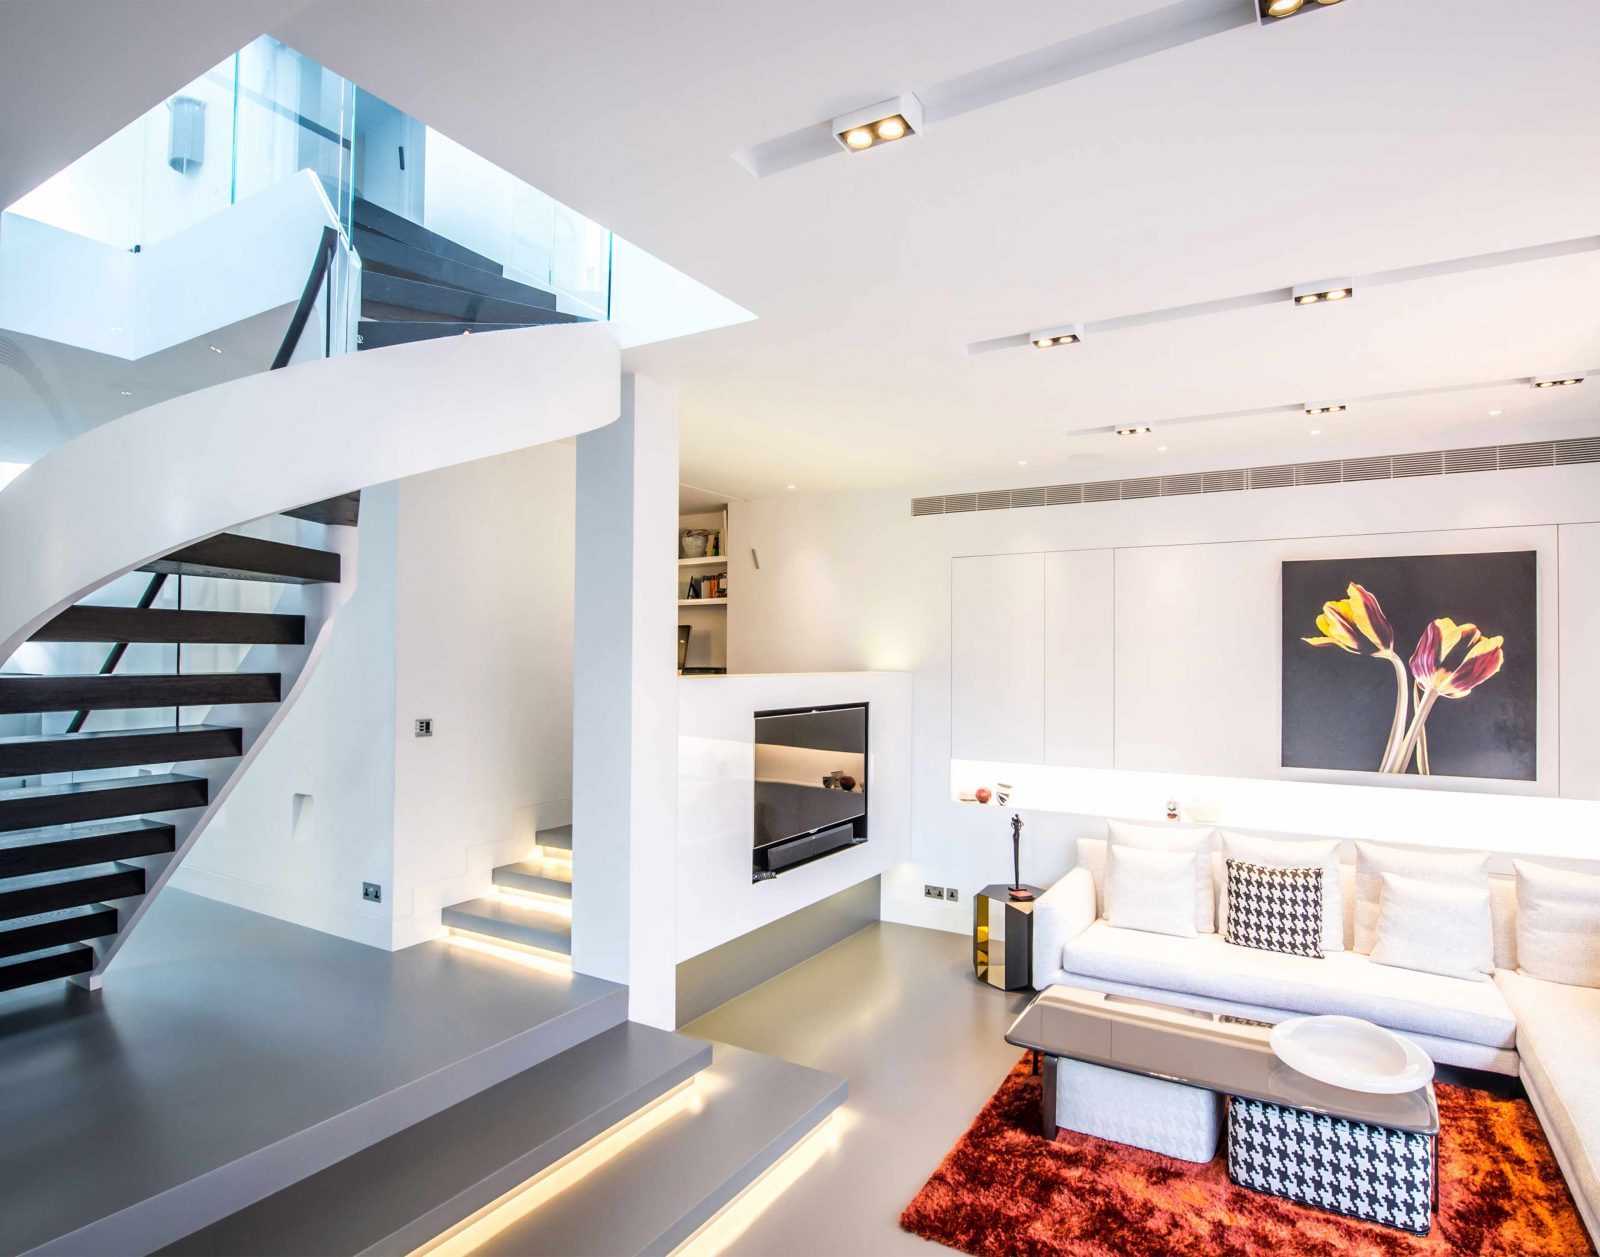 Architectural Lighting Design Contemporary House Interior Living Space Studio N